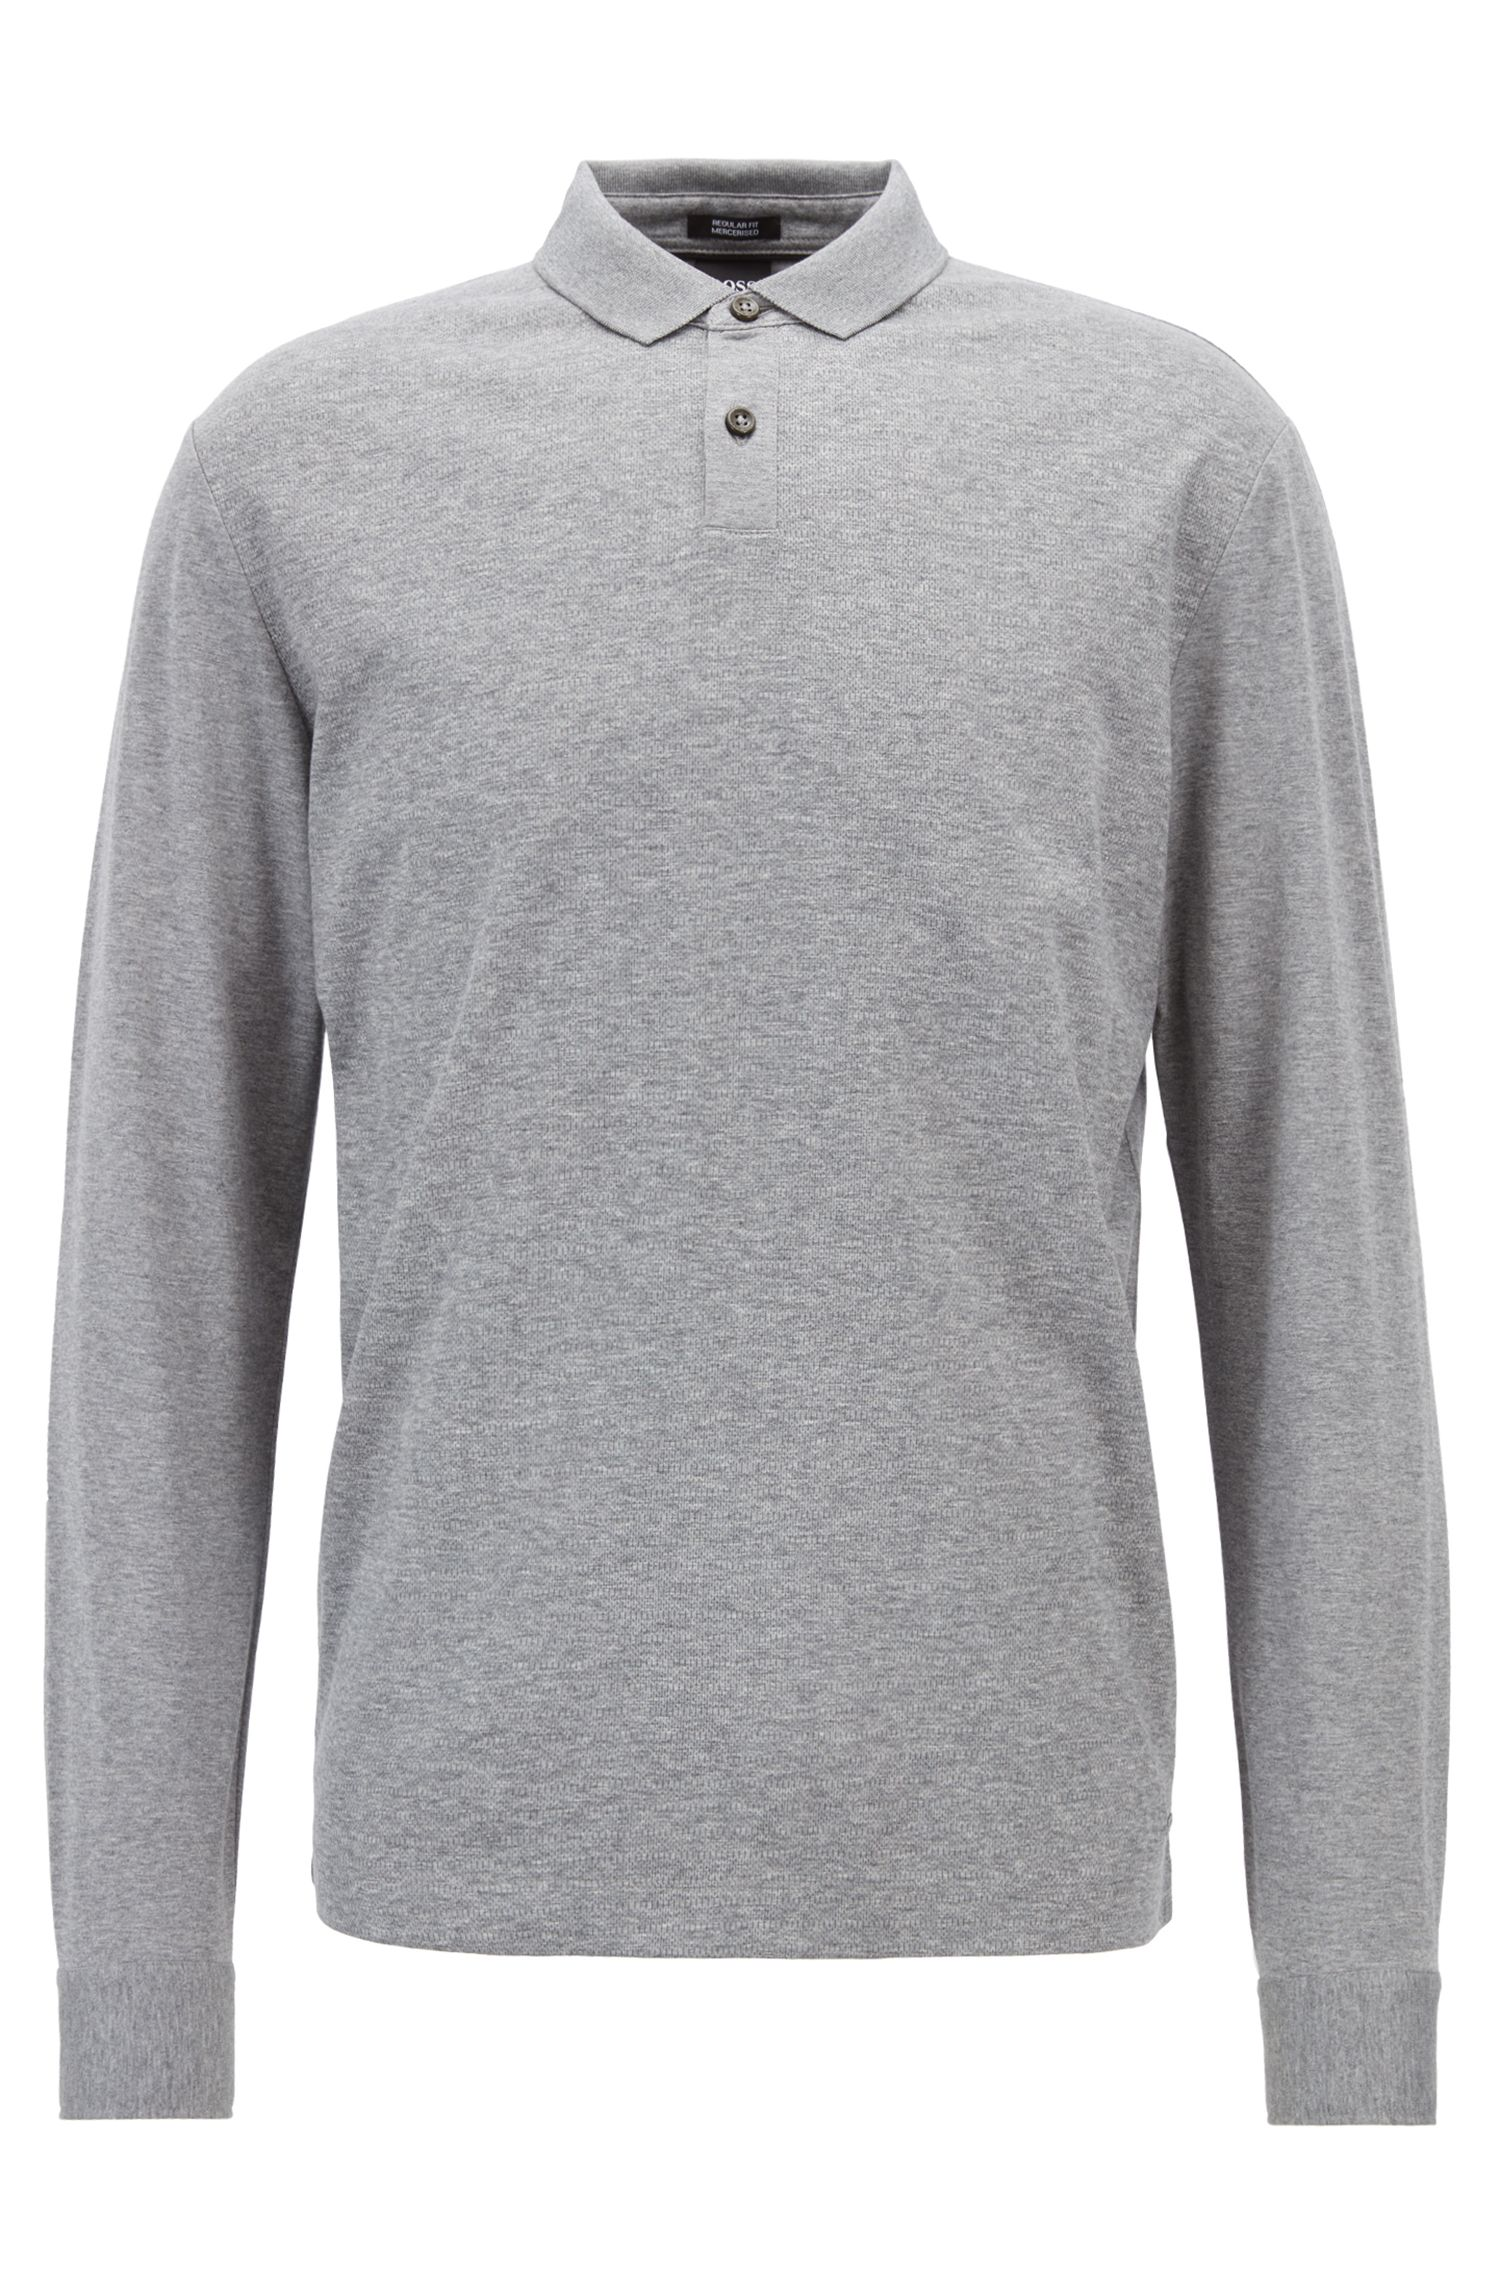 Regular-fit polo shirt in mercerised cotton with micro-check, Silver